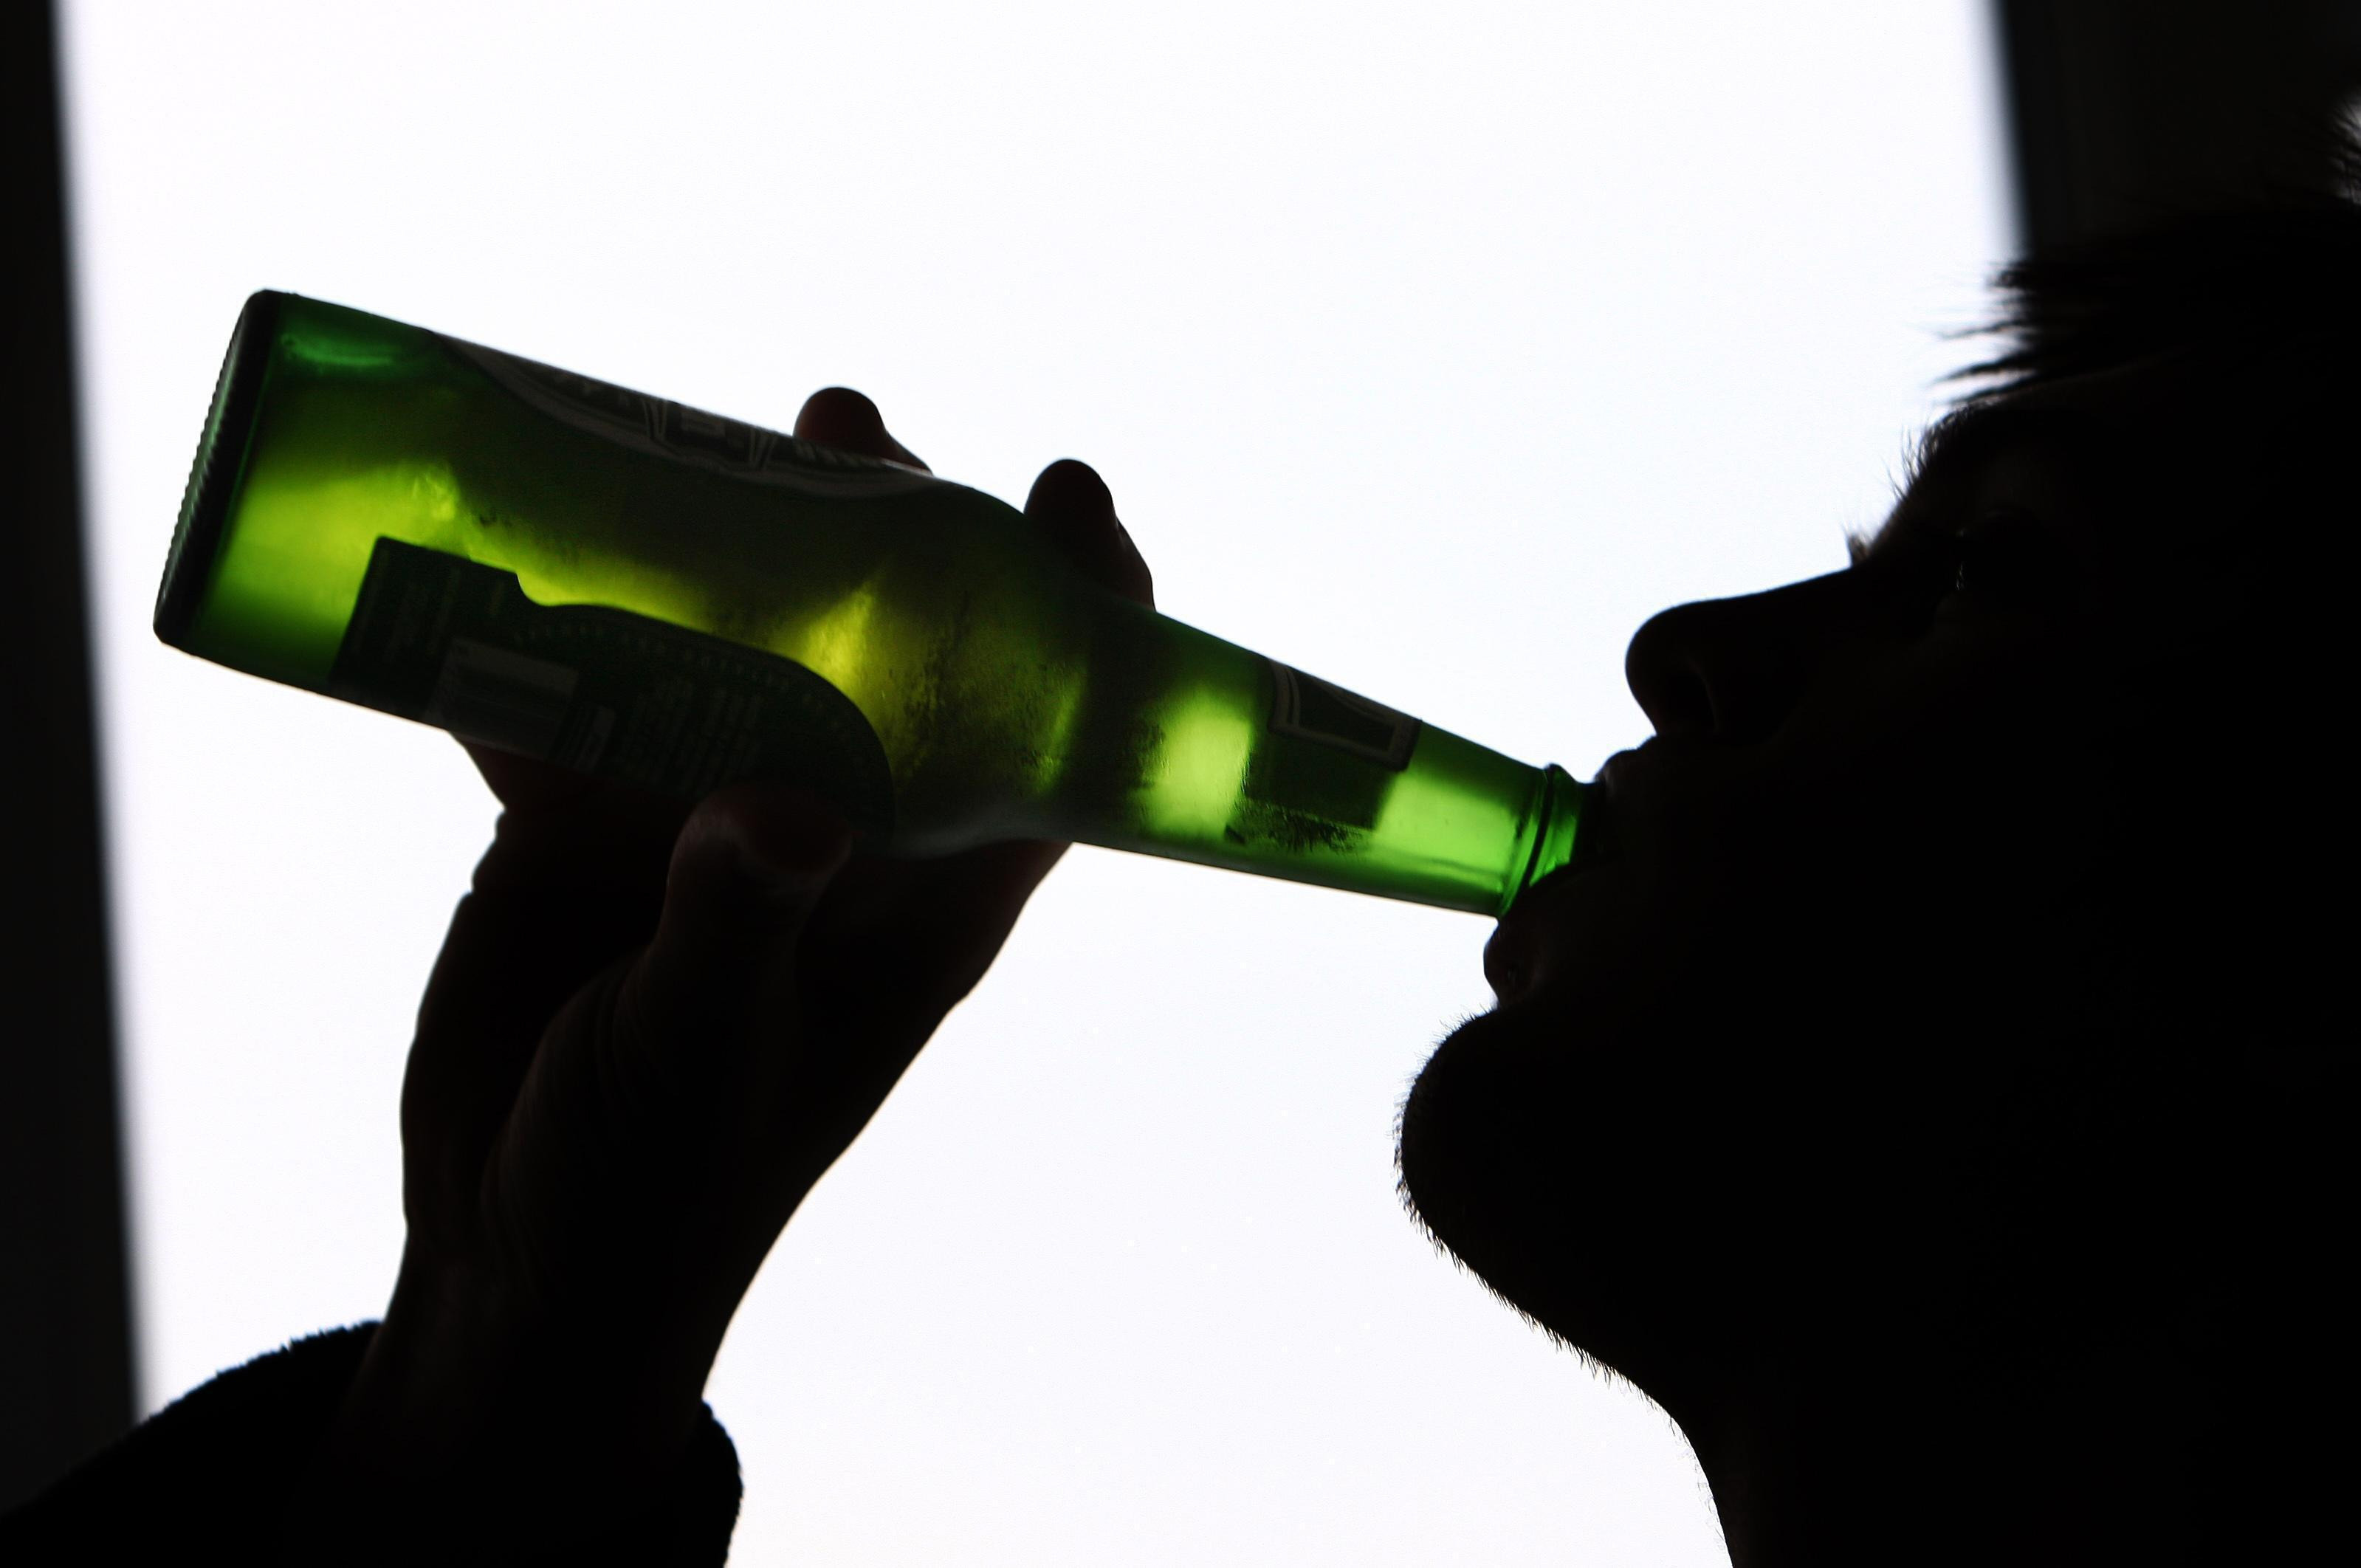 Eight-year-old boy among thousands caught underage binge drinking